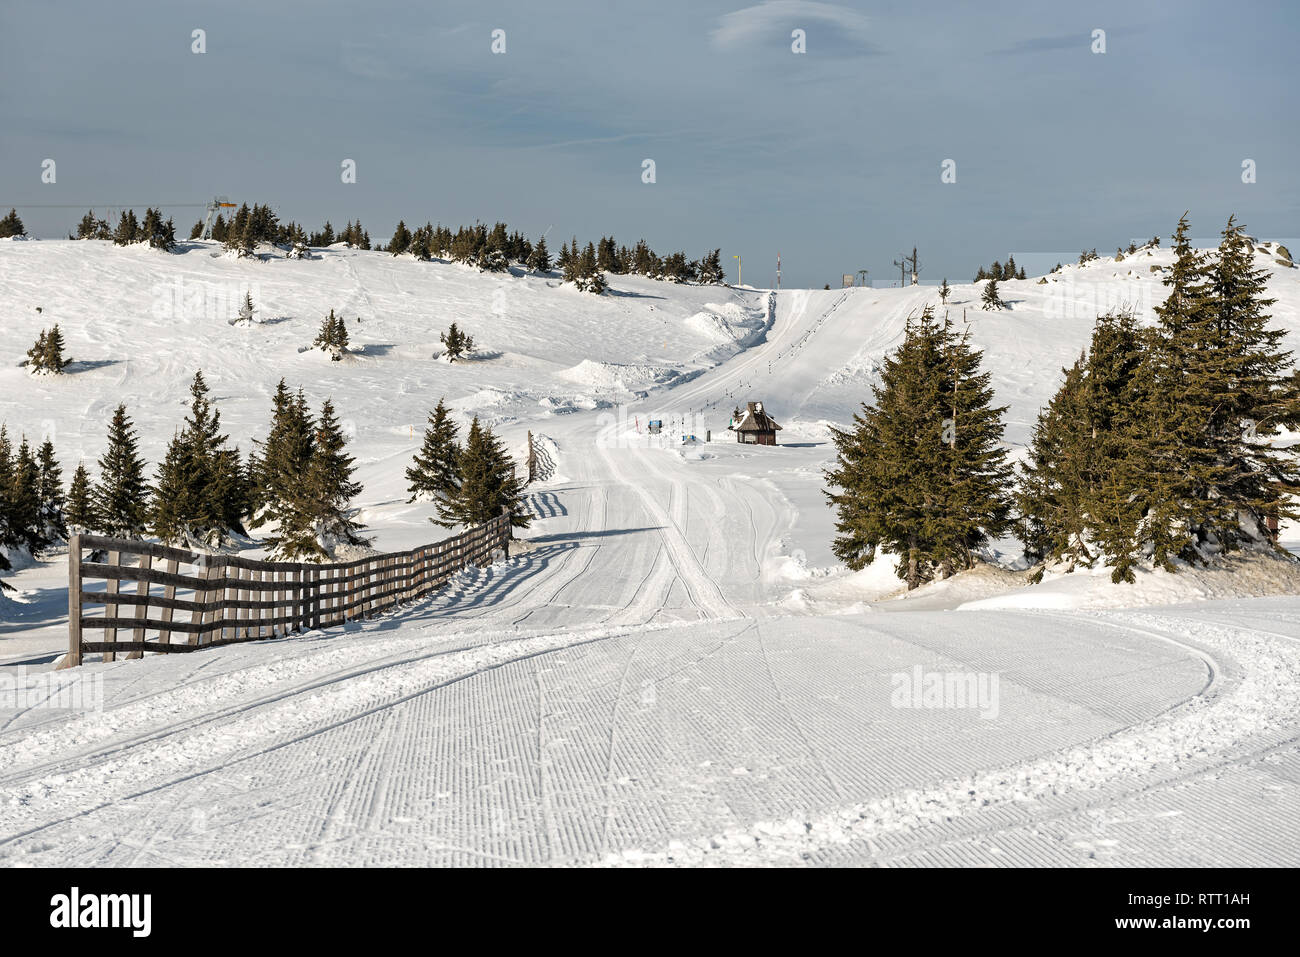 Early morning view of a Ski piste in winter, Mountain Kopaonik, Serbia - Stock Image